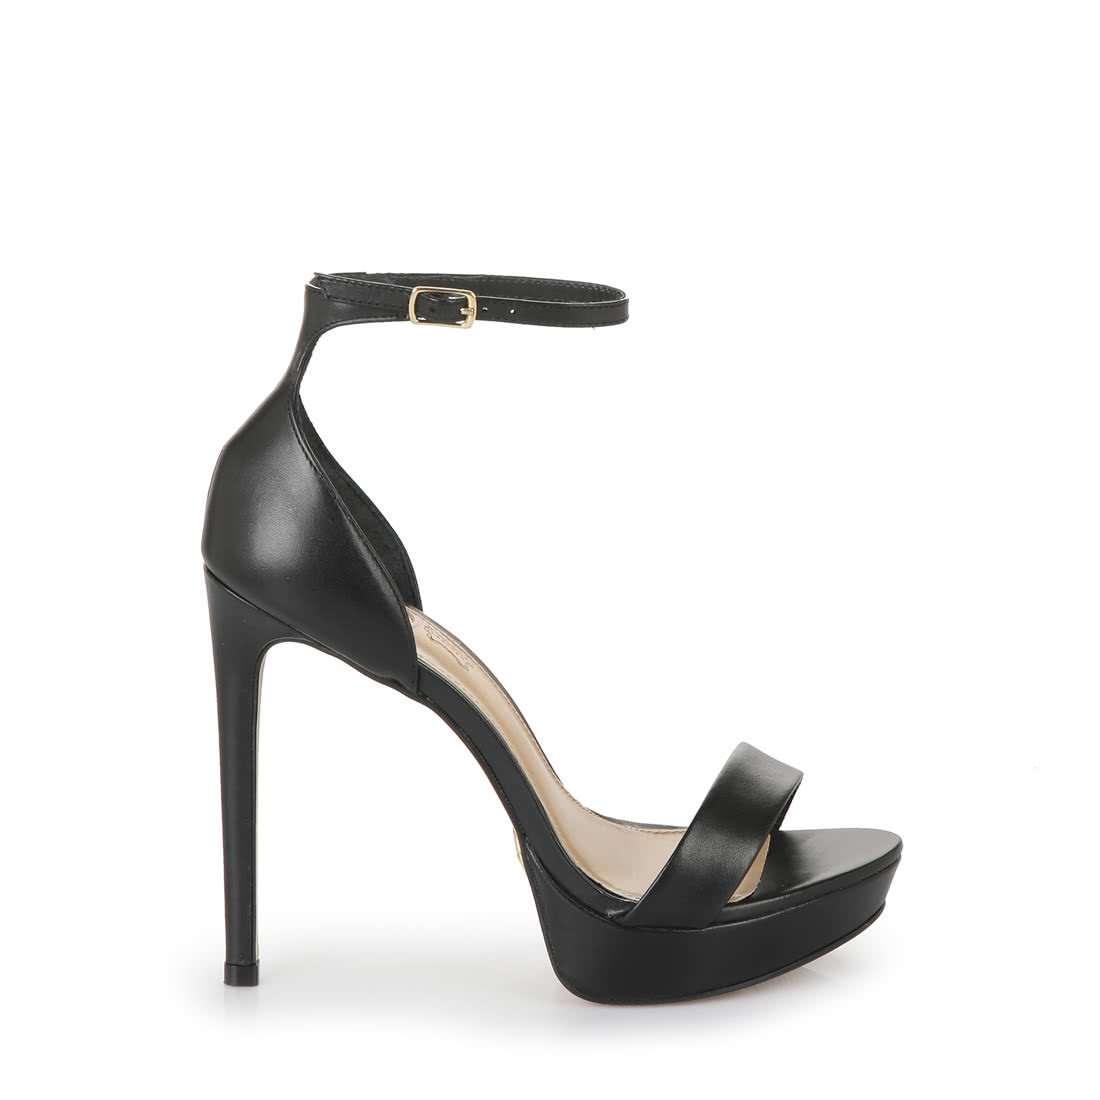 59986b165e6 Buffalo platform sandals in black buy online in BUFFALO Online-Shop ...